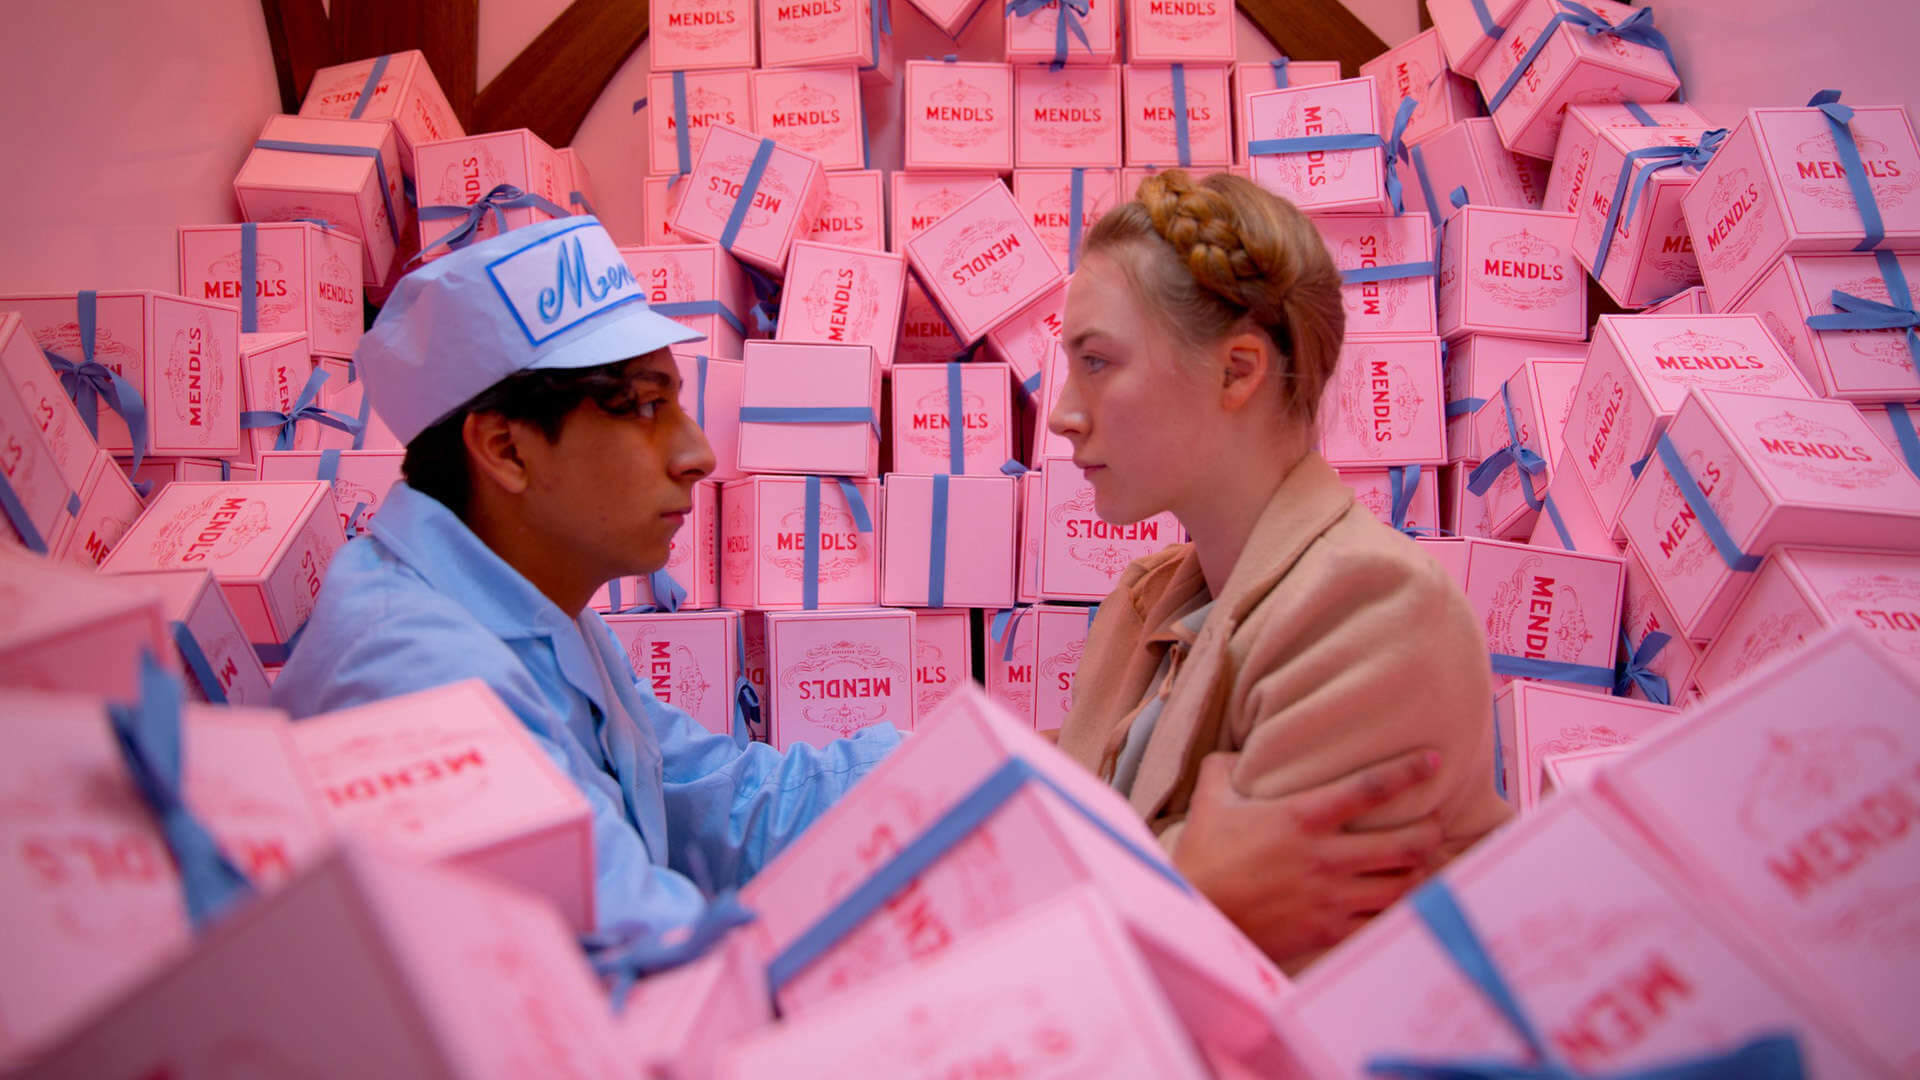 Still from The Grand Budapest Hotel (2014)